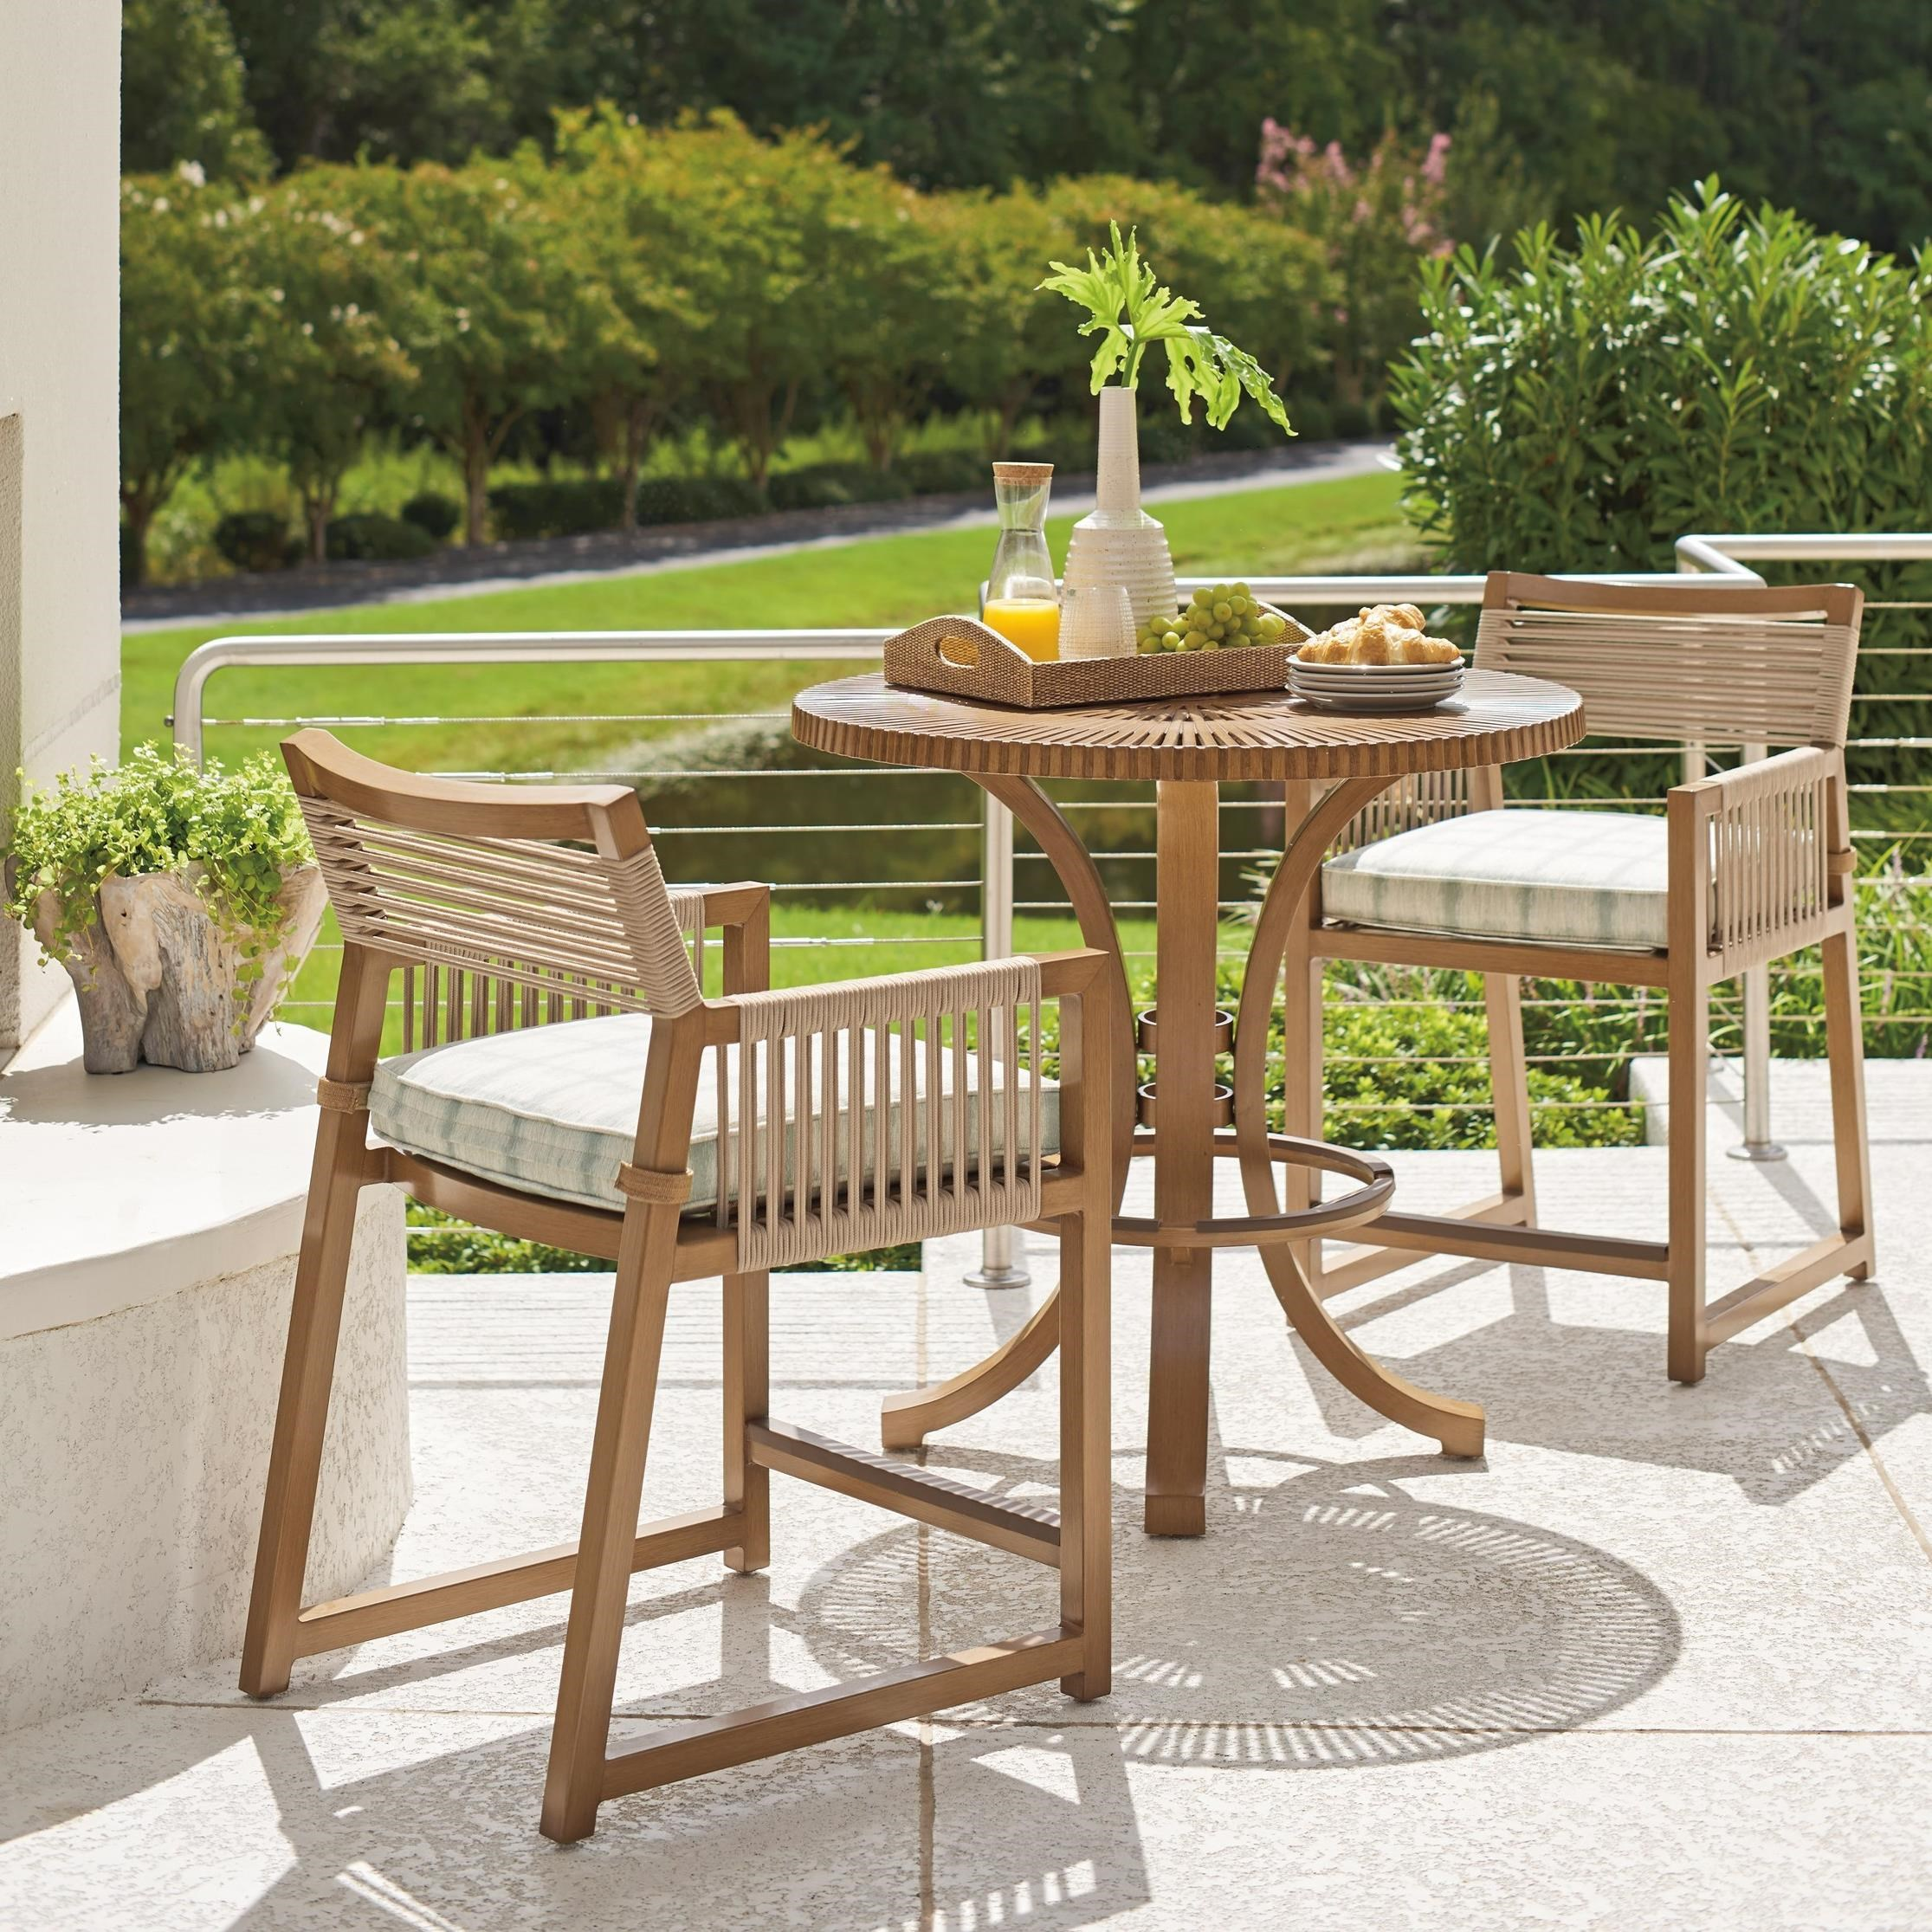 St Tropez 3-Piece Outdoor Bistro Set w/ Counter Stools by Tommy Bahama Outdoor Living at Baer's Furniture